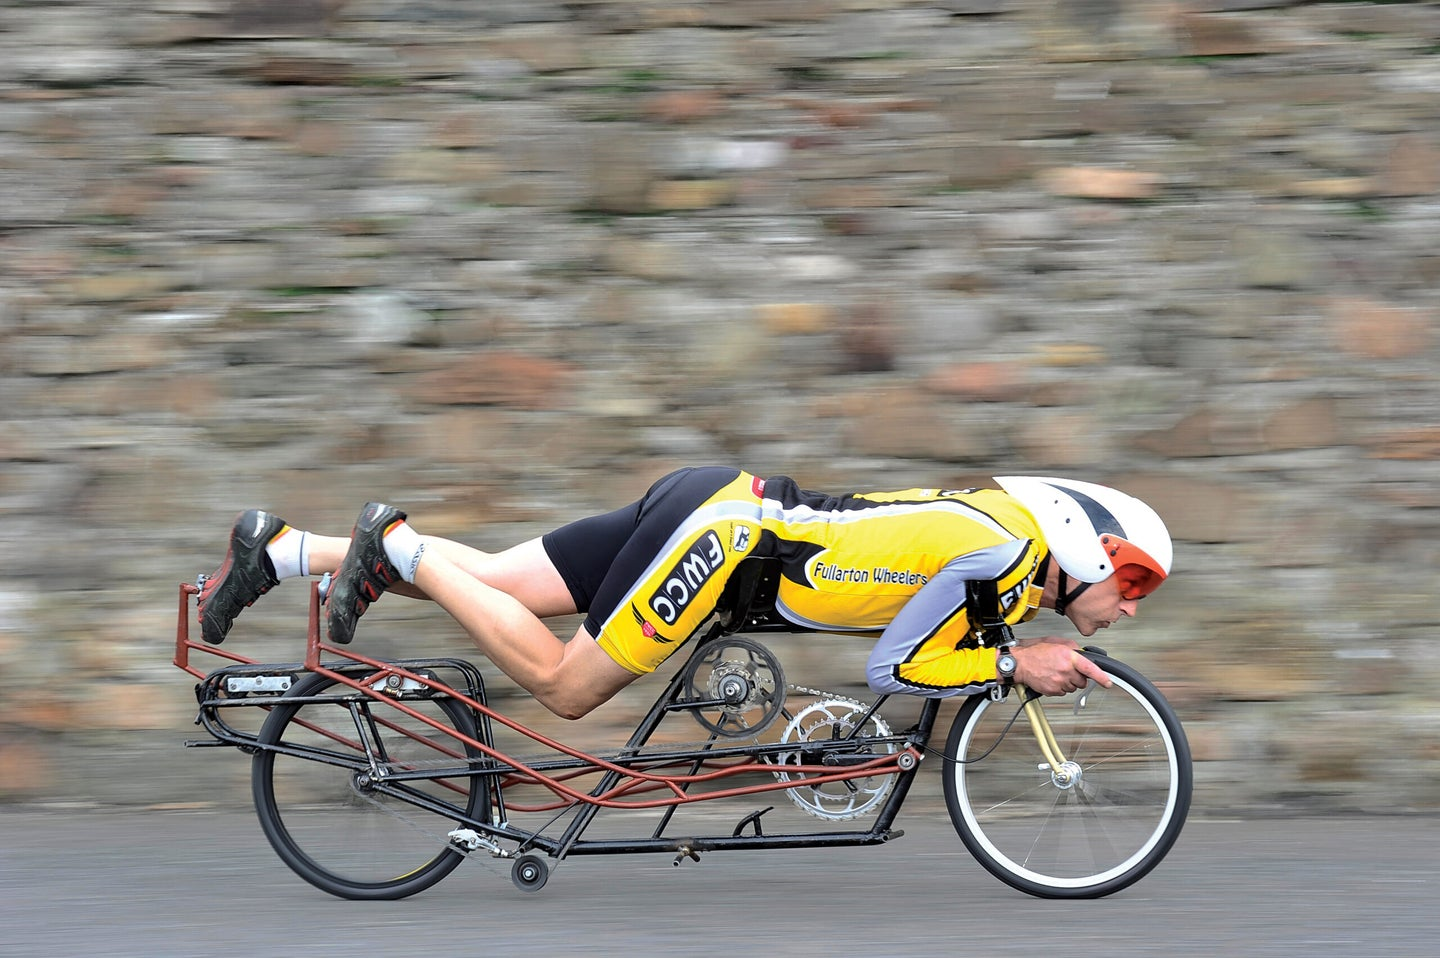 The Fastest Face-Down, Head-First, Human-Powered Vehicle